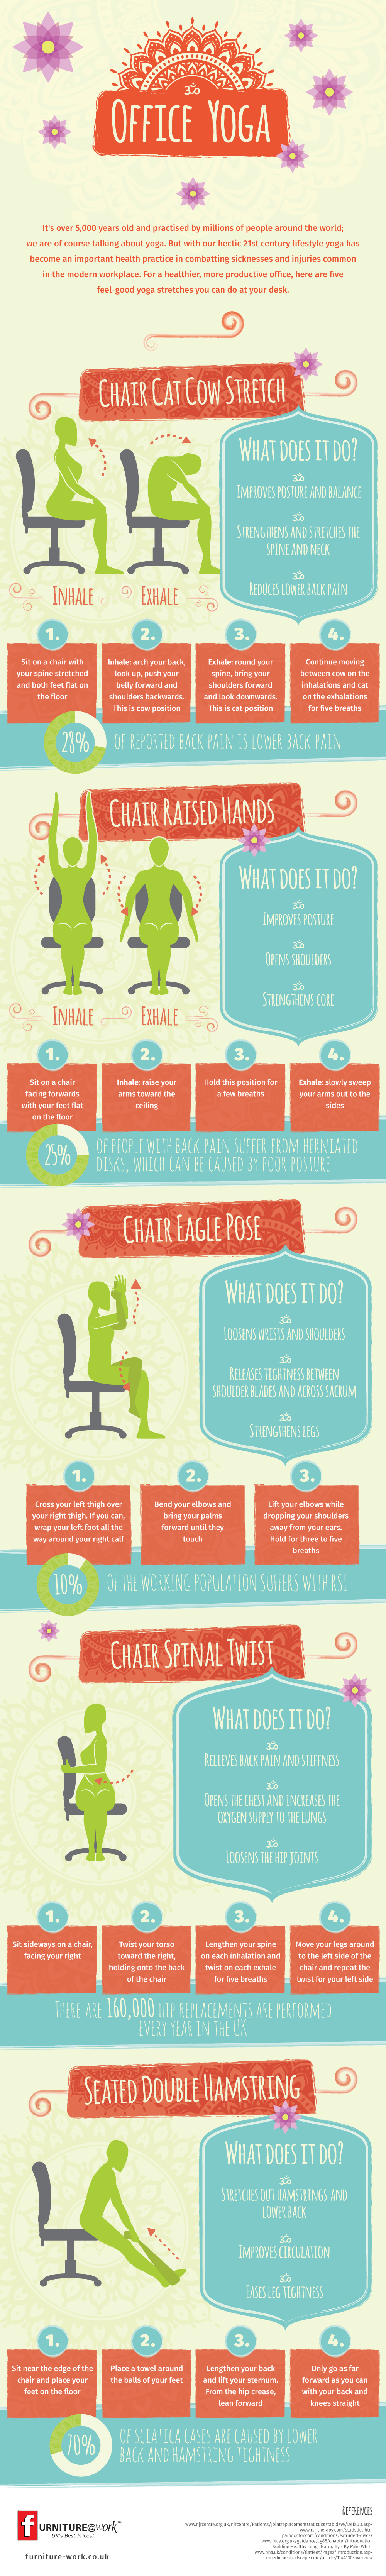 furniture-at-work-officeyoga-infographic